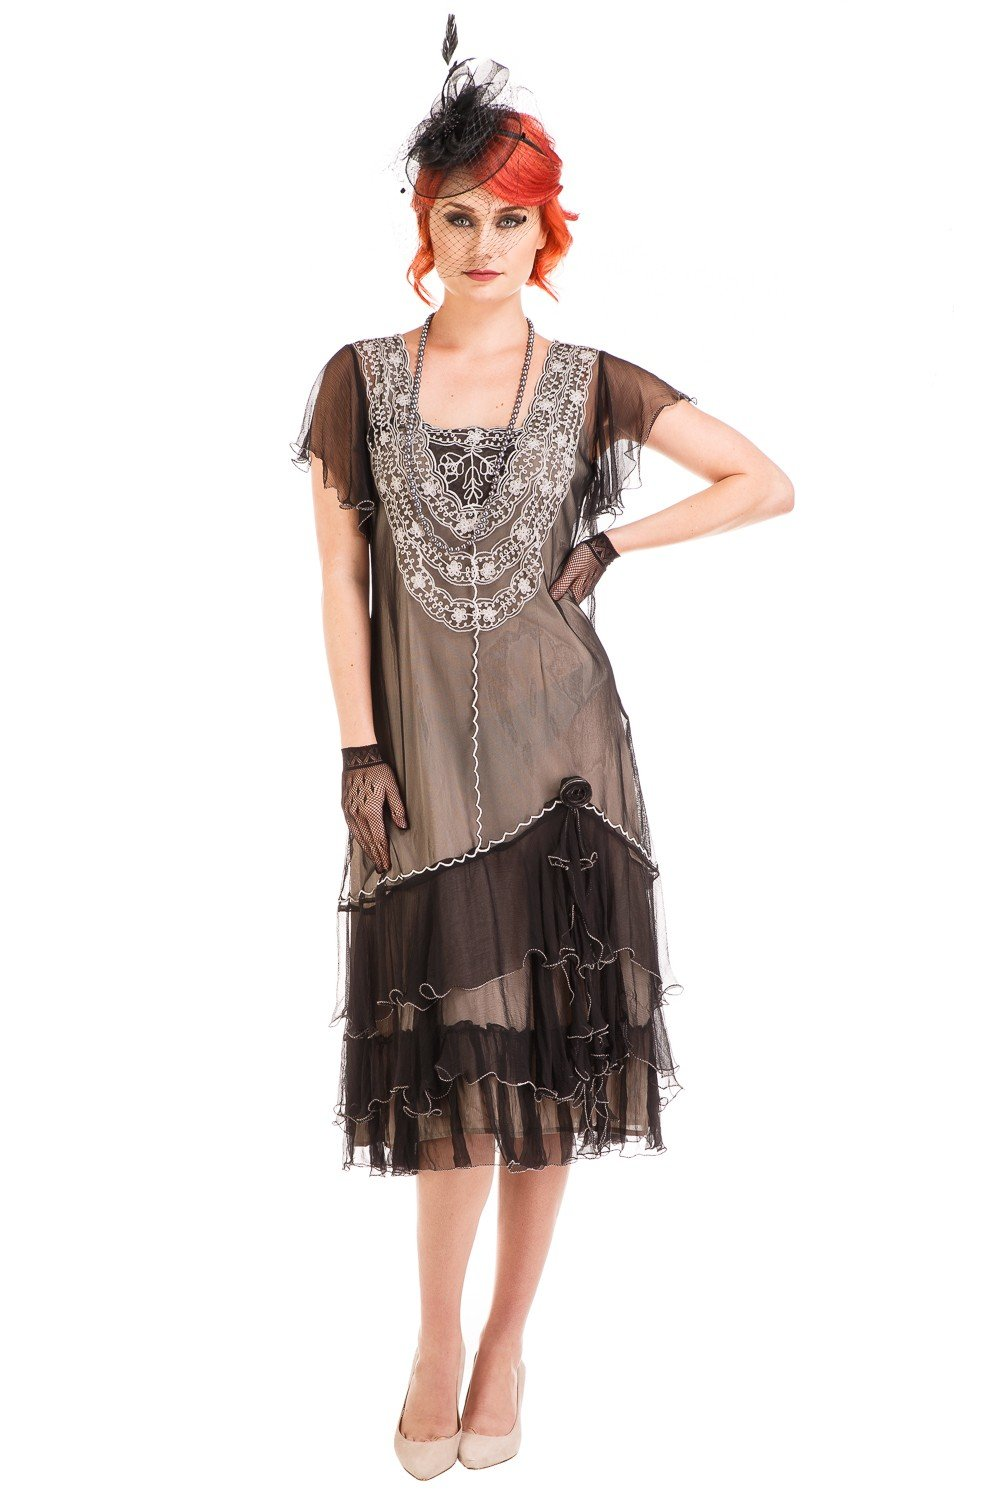 1920s Fashion & Clothing | Roaring 20s Attire Alexa 1920s Flapper Style Dress in Black-Silver by Nataya $250.00 AT vintagedancer.com